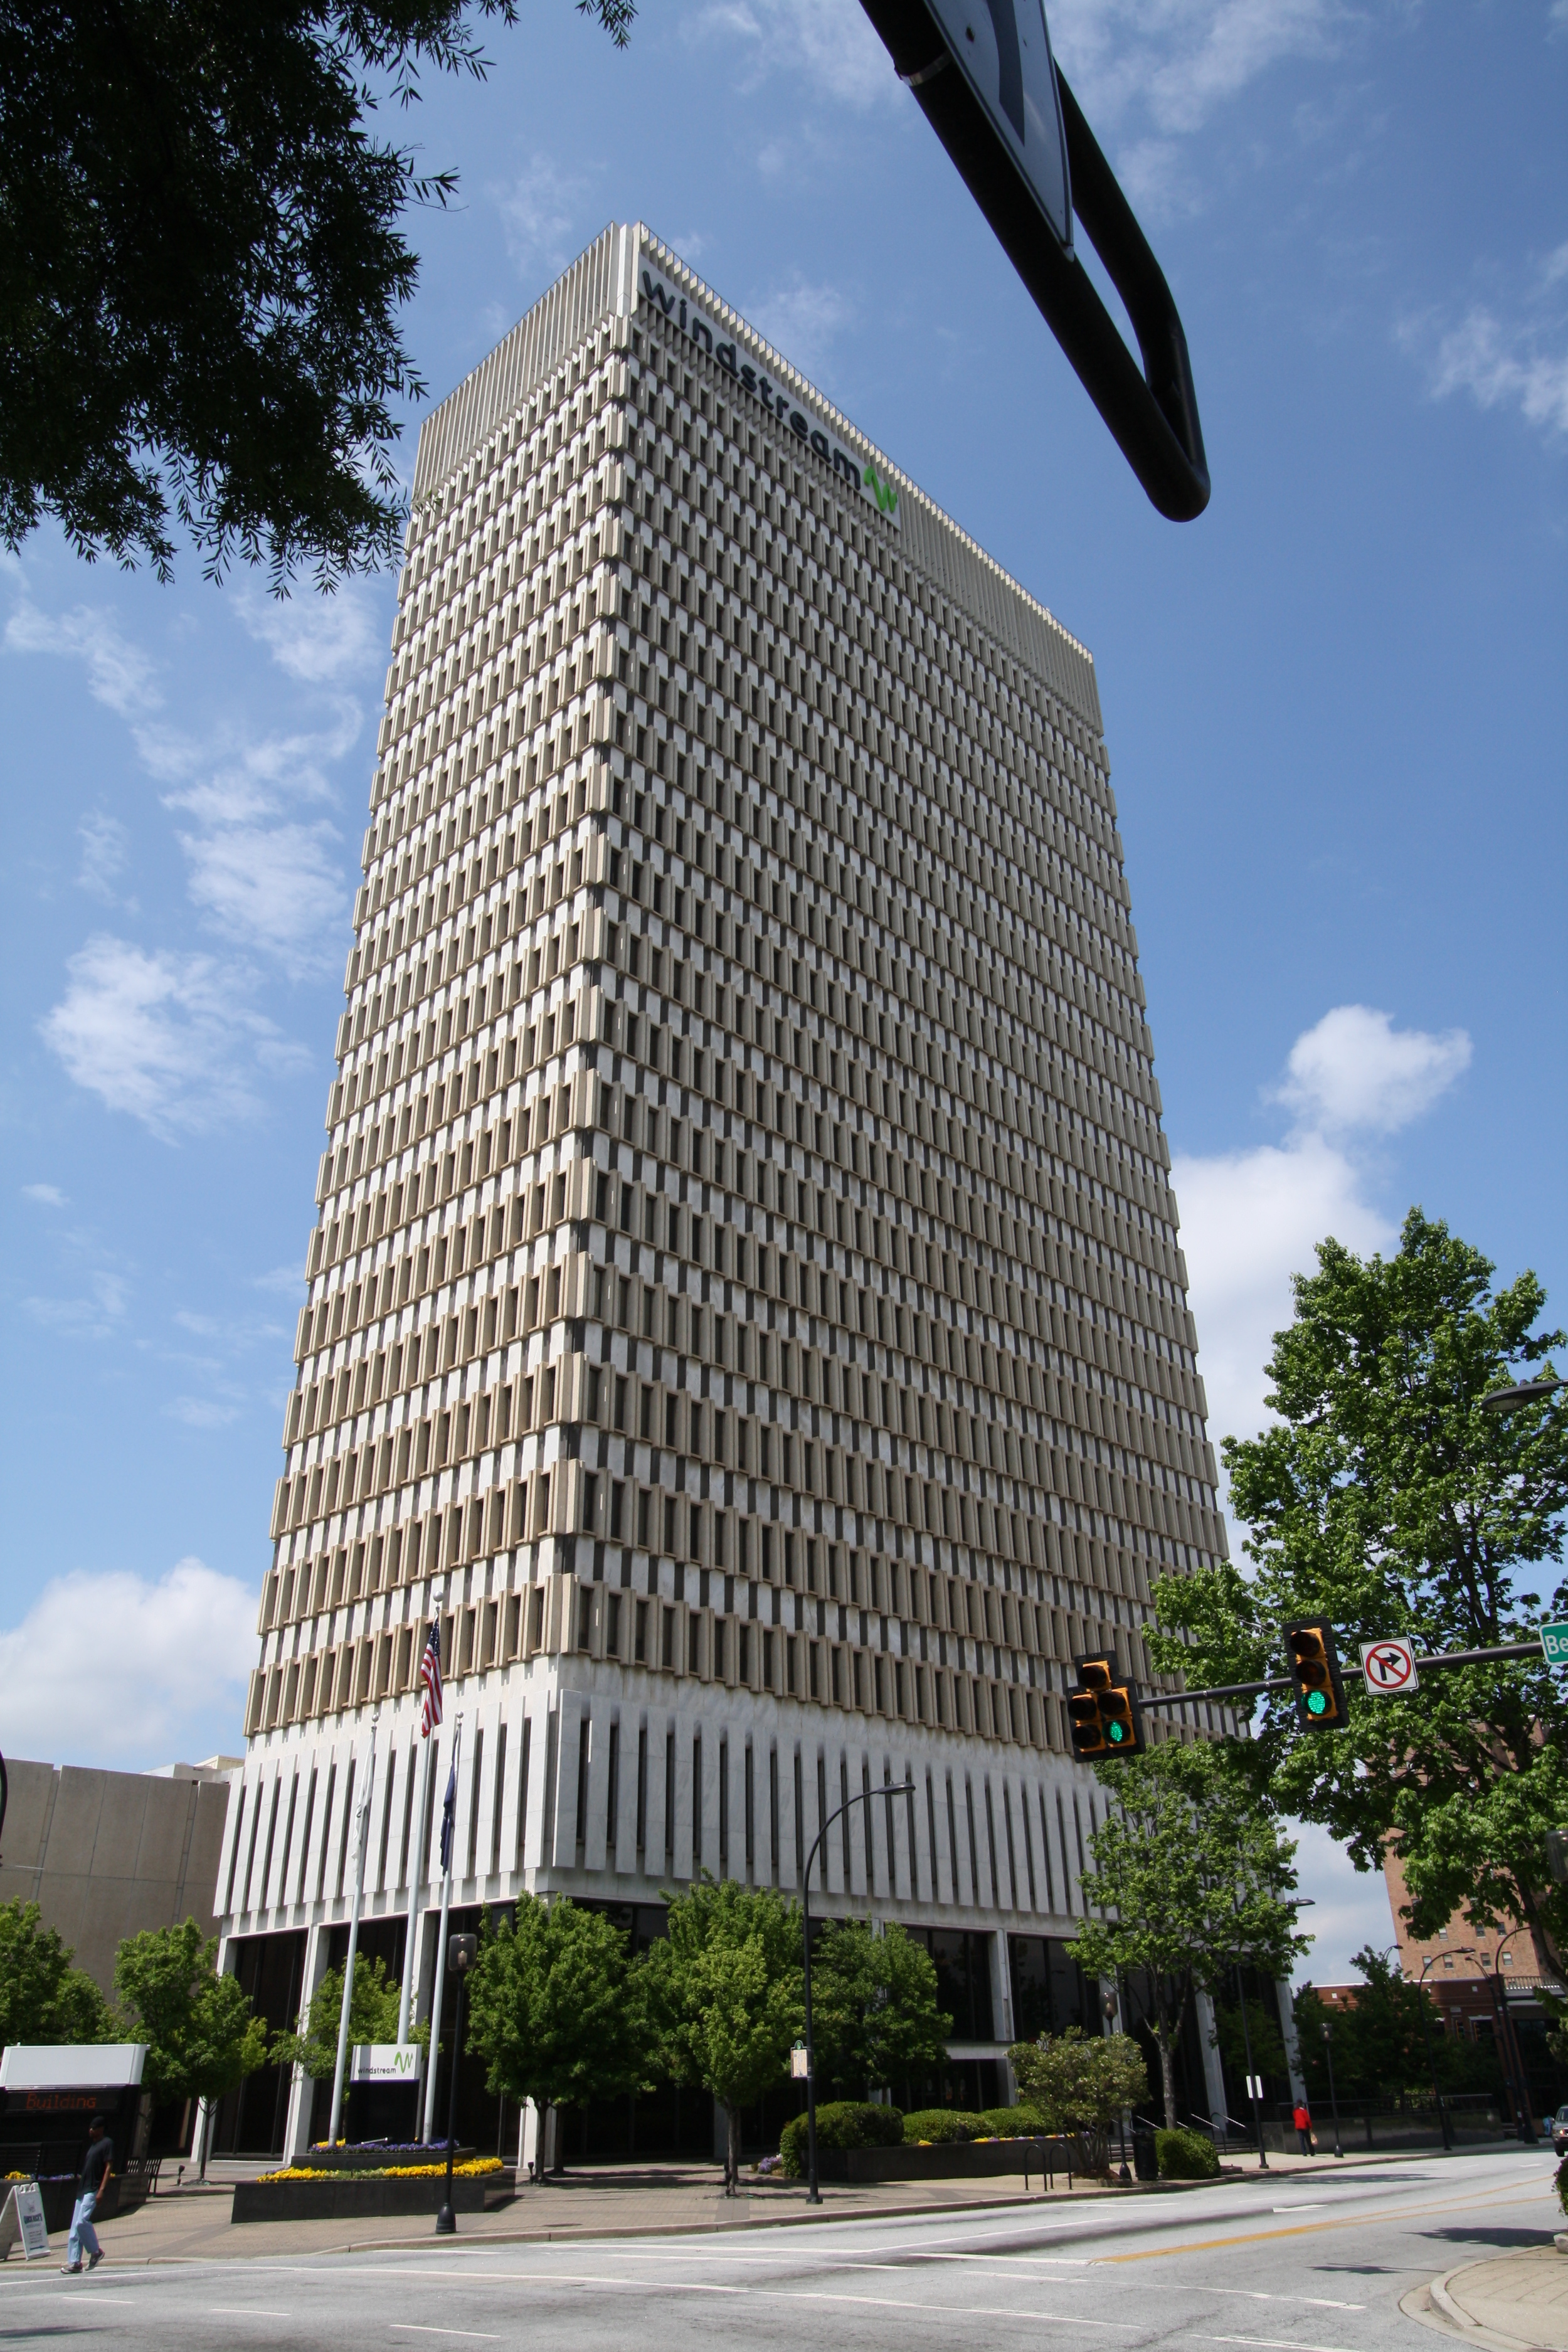 The Landmark Building - Greeneville, SC - Built in 1966 - 22 Stories - International Style - Commercial Office Use